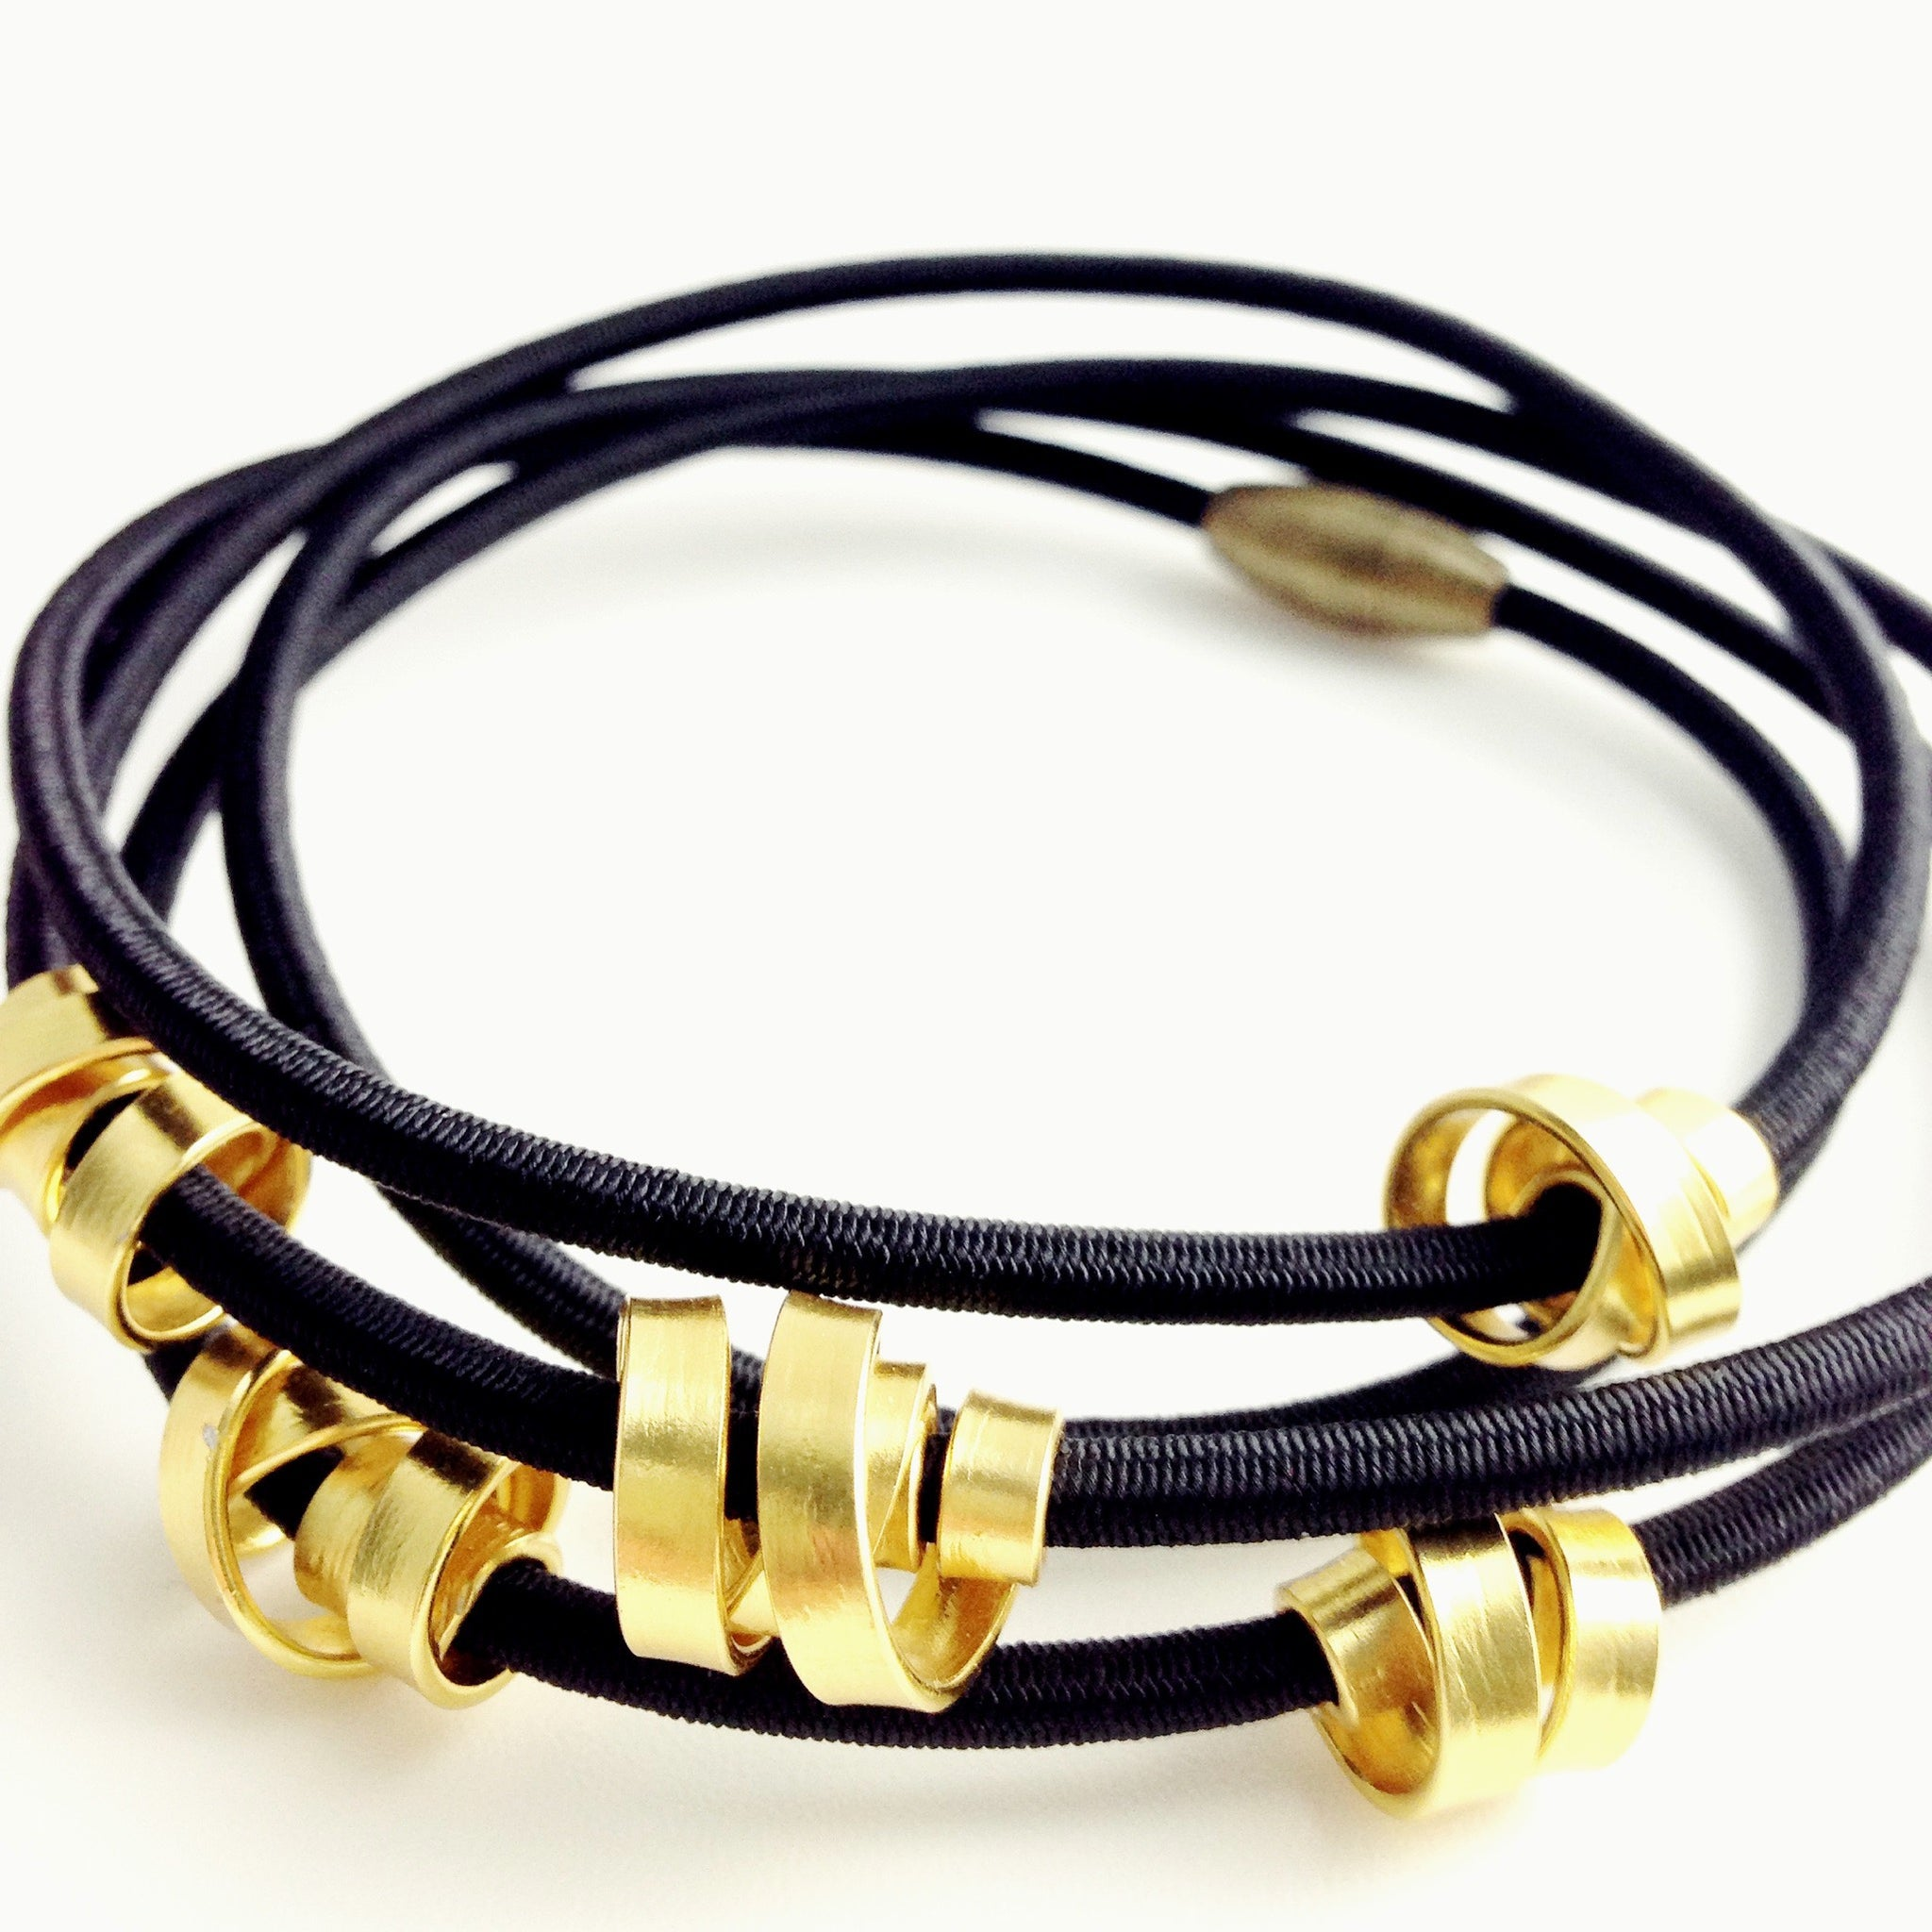 A 112cm Loopt necklace/bracelet in fine black and flat gold coloured aluminum wire.